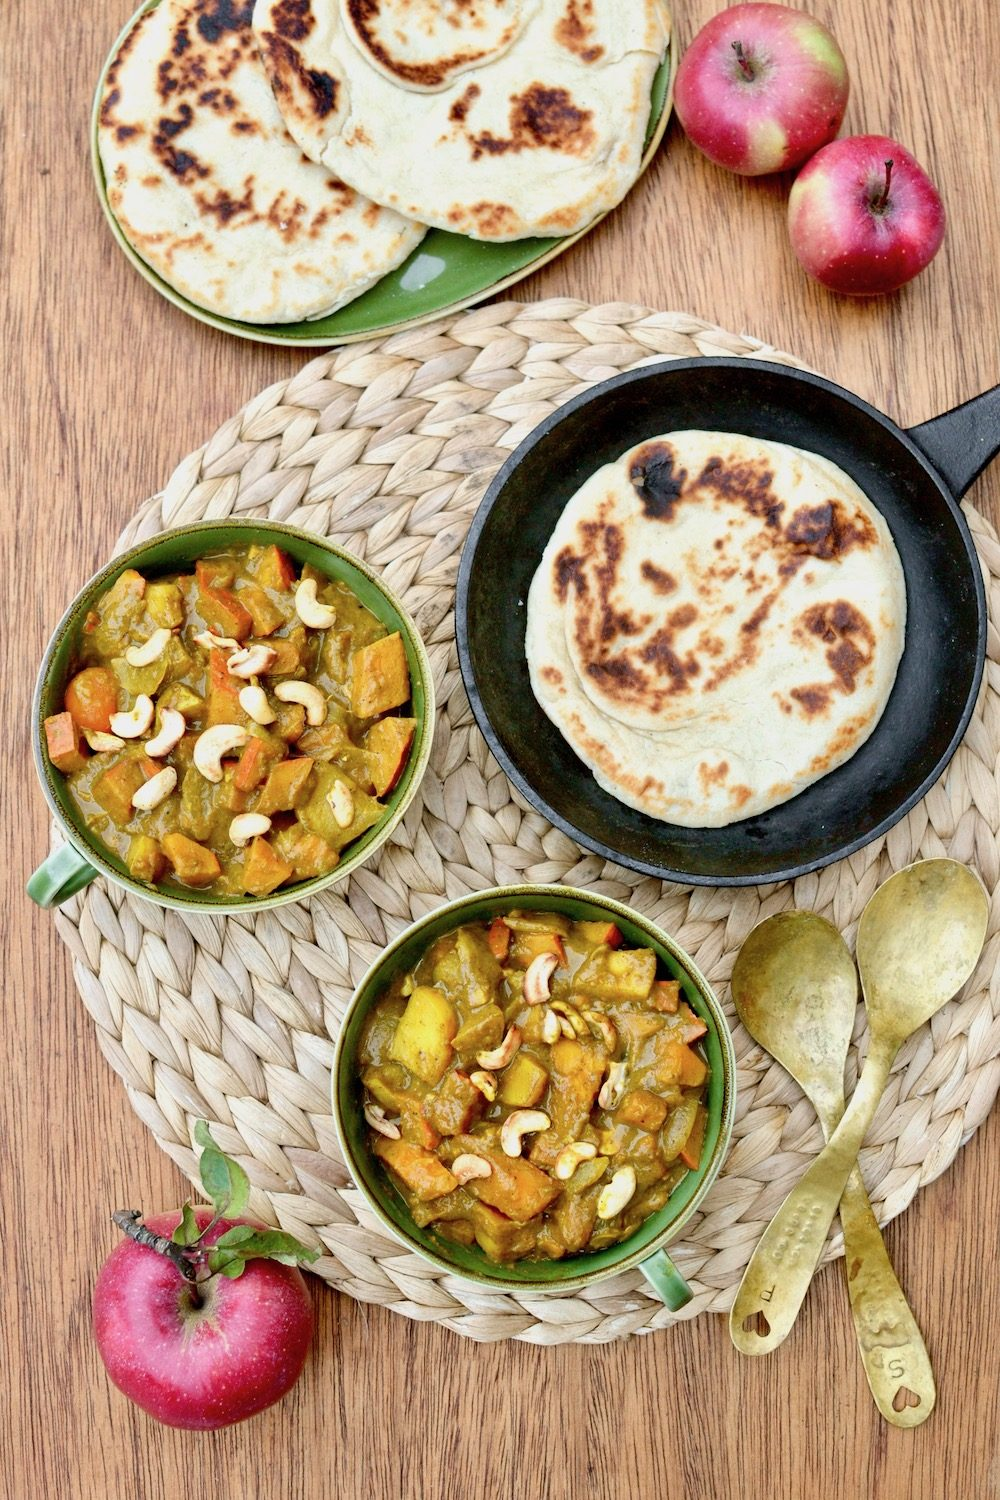 Two bowls of vegan pumpkin curry on a wooden board alongside apples and naan bread.